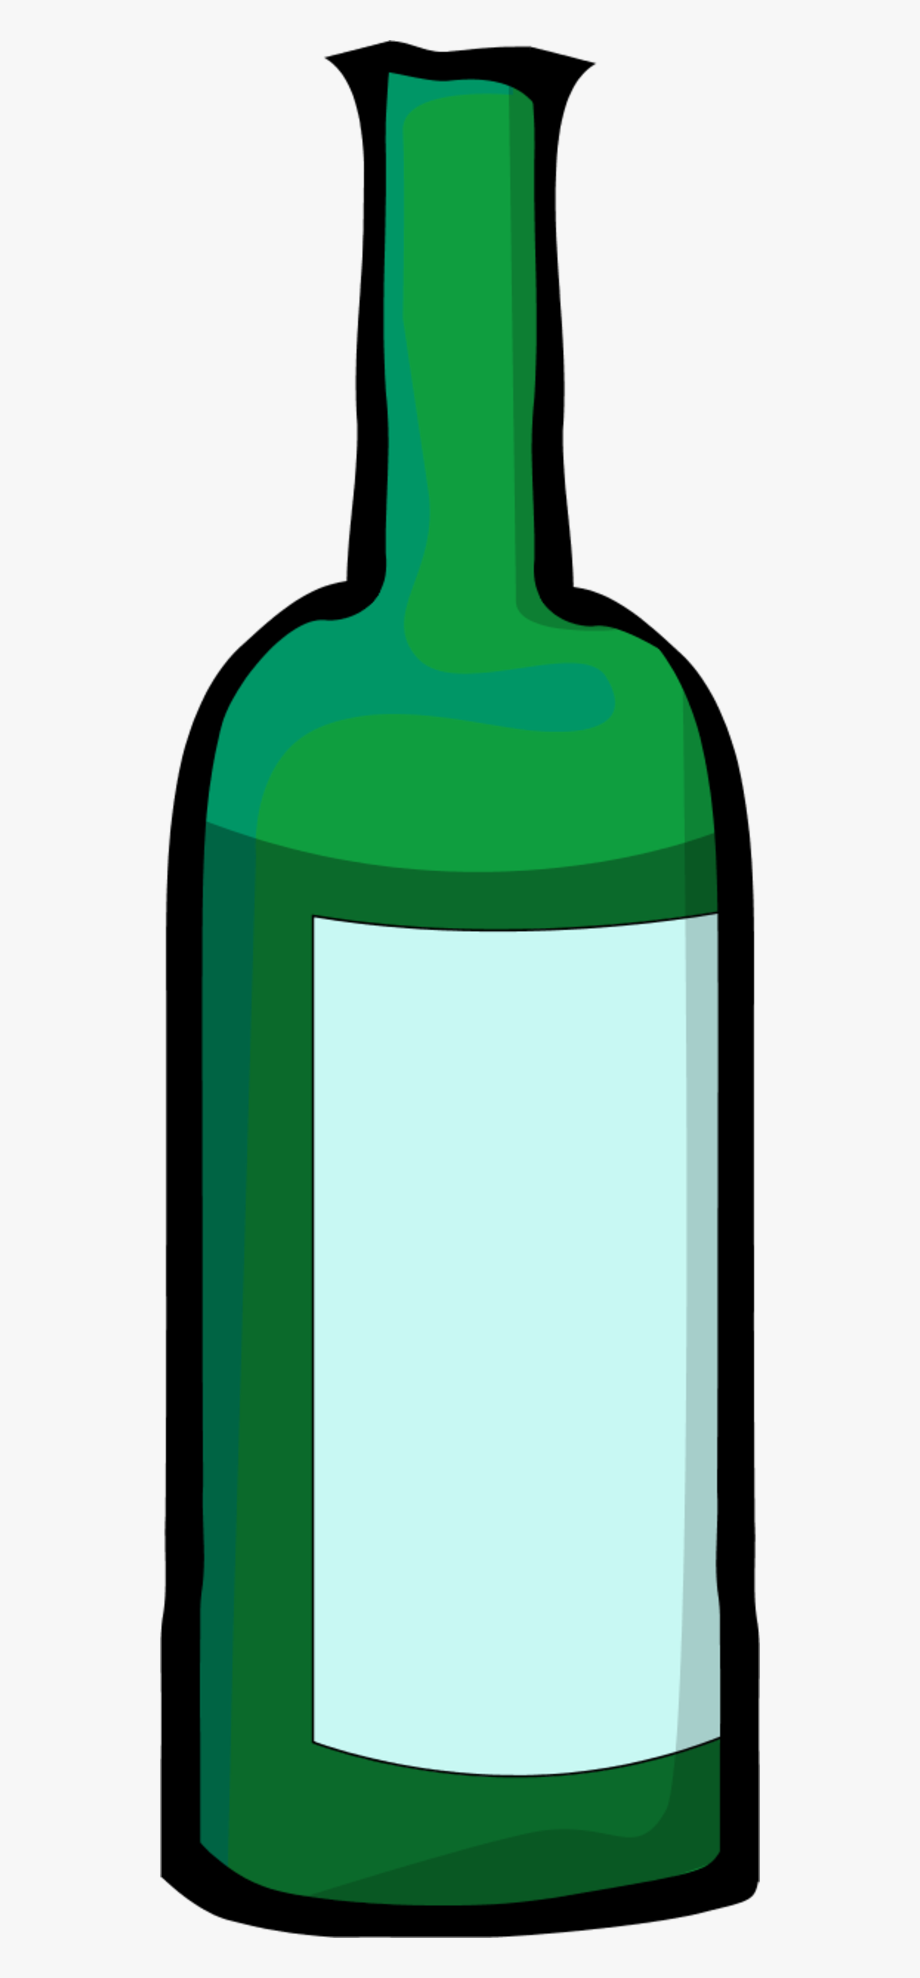 Bottle Clipart Green Bottle.